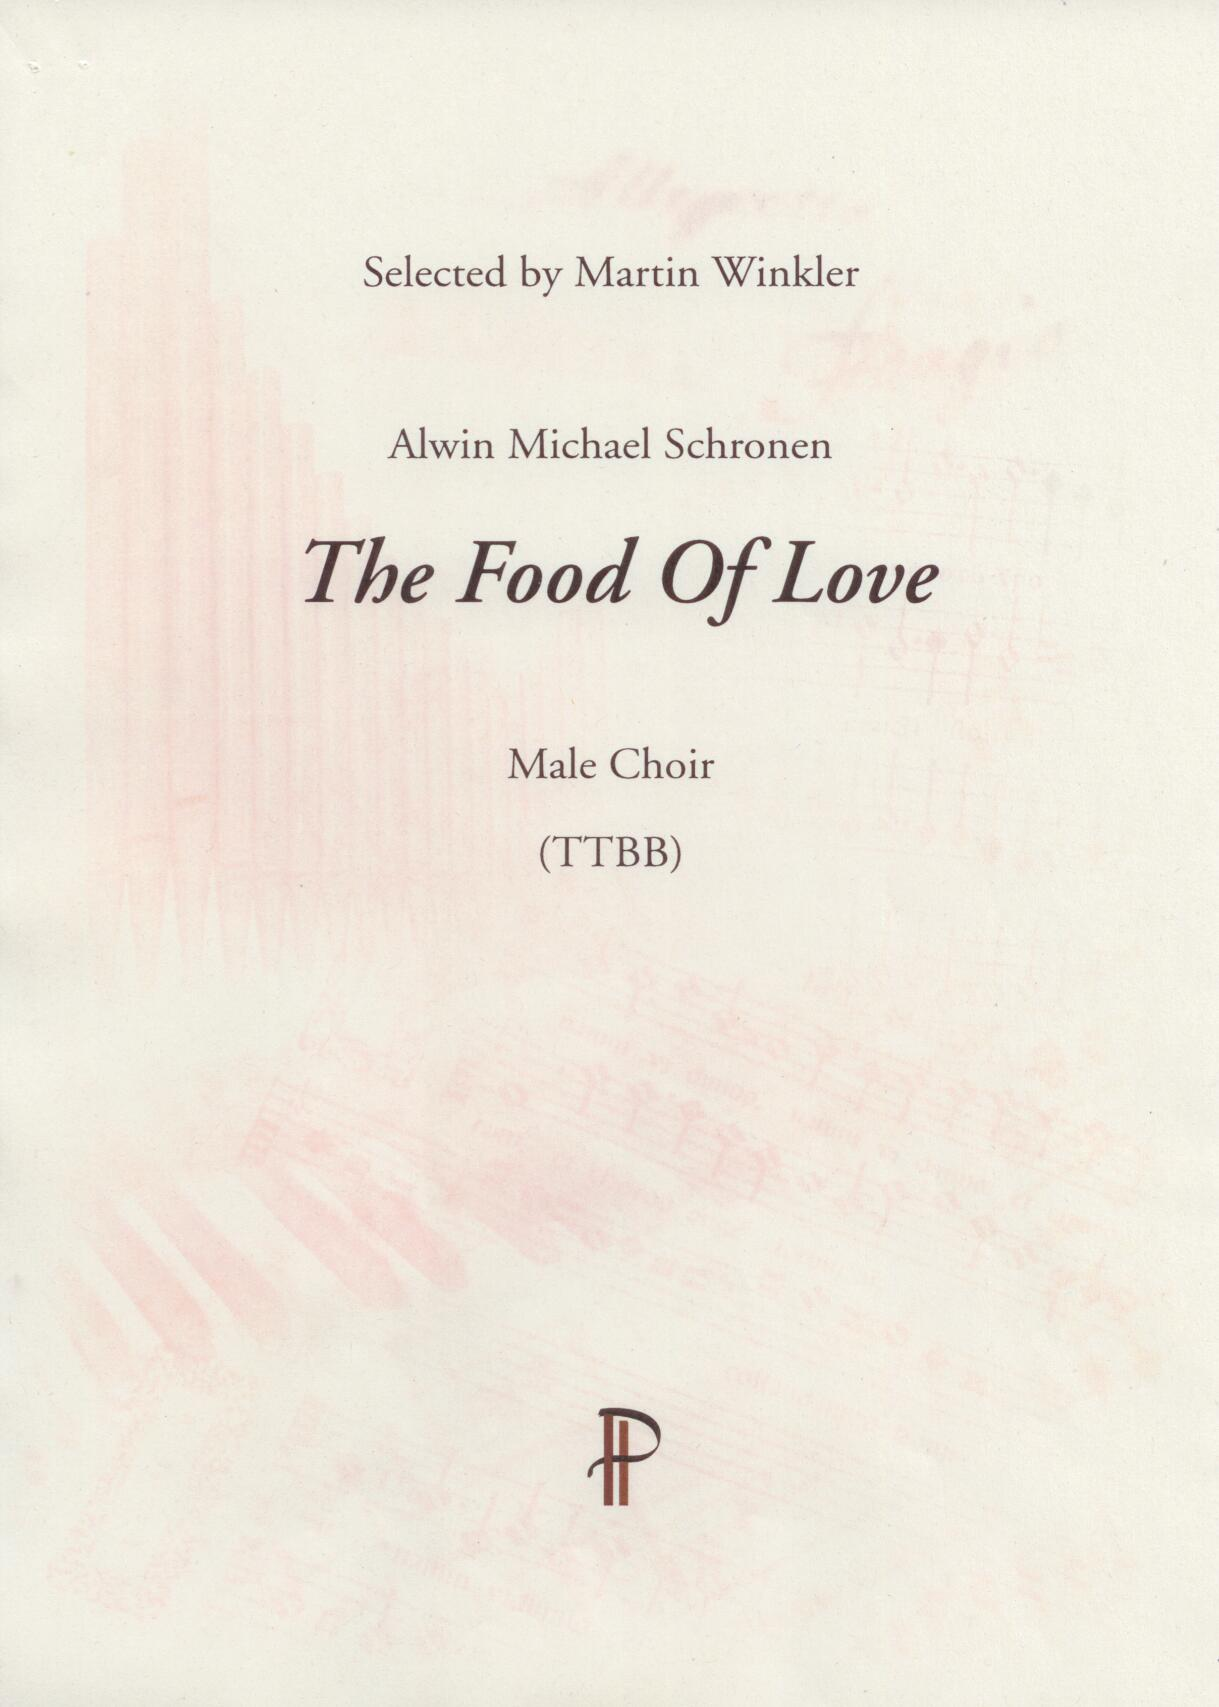 The Food Of Love - Show sample score